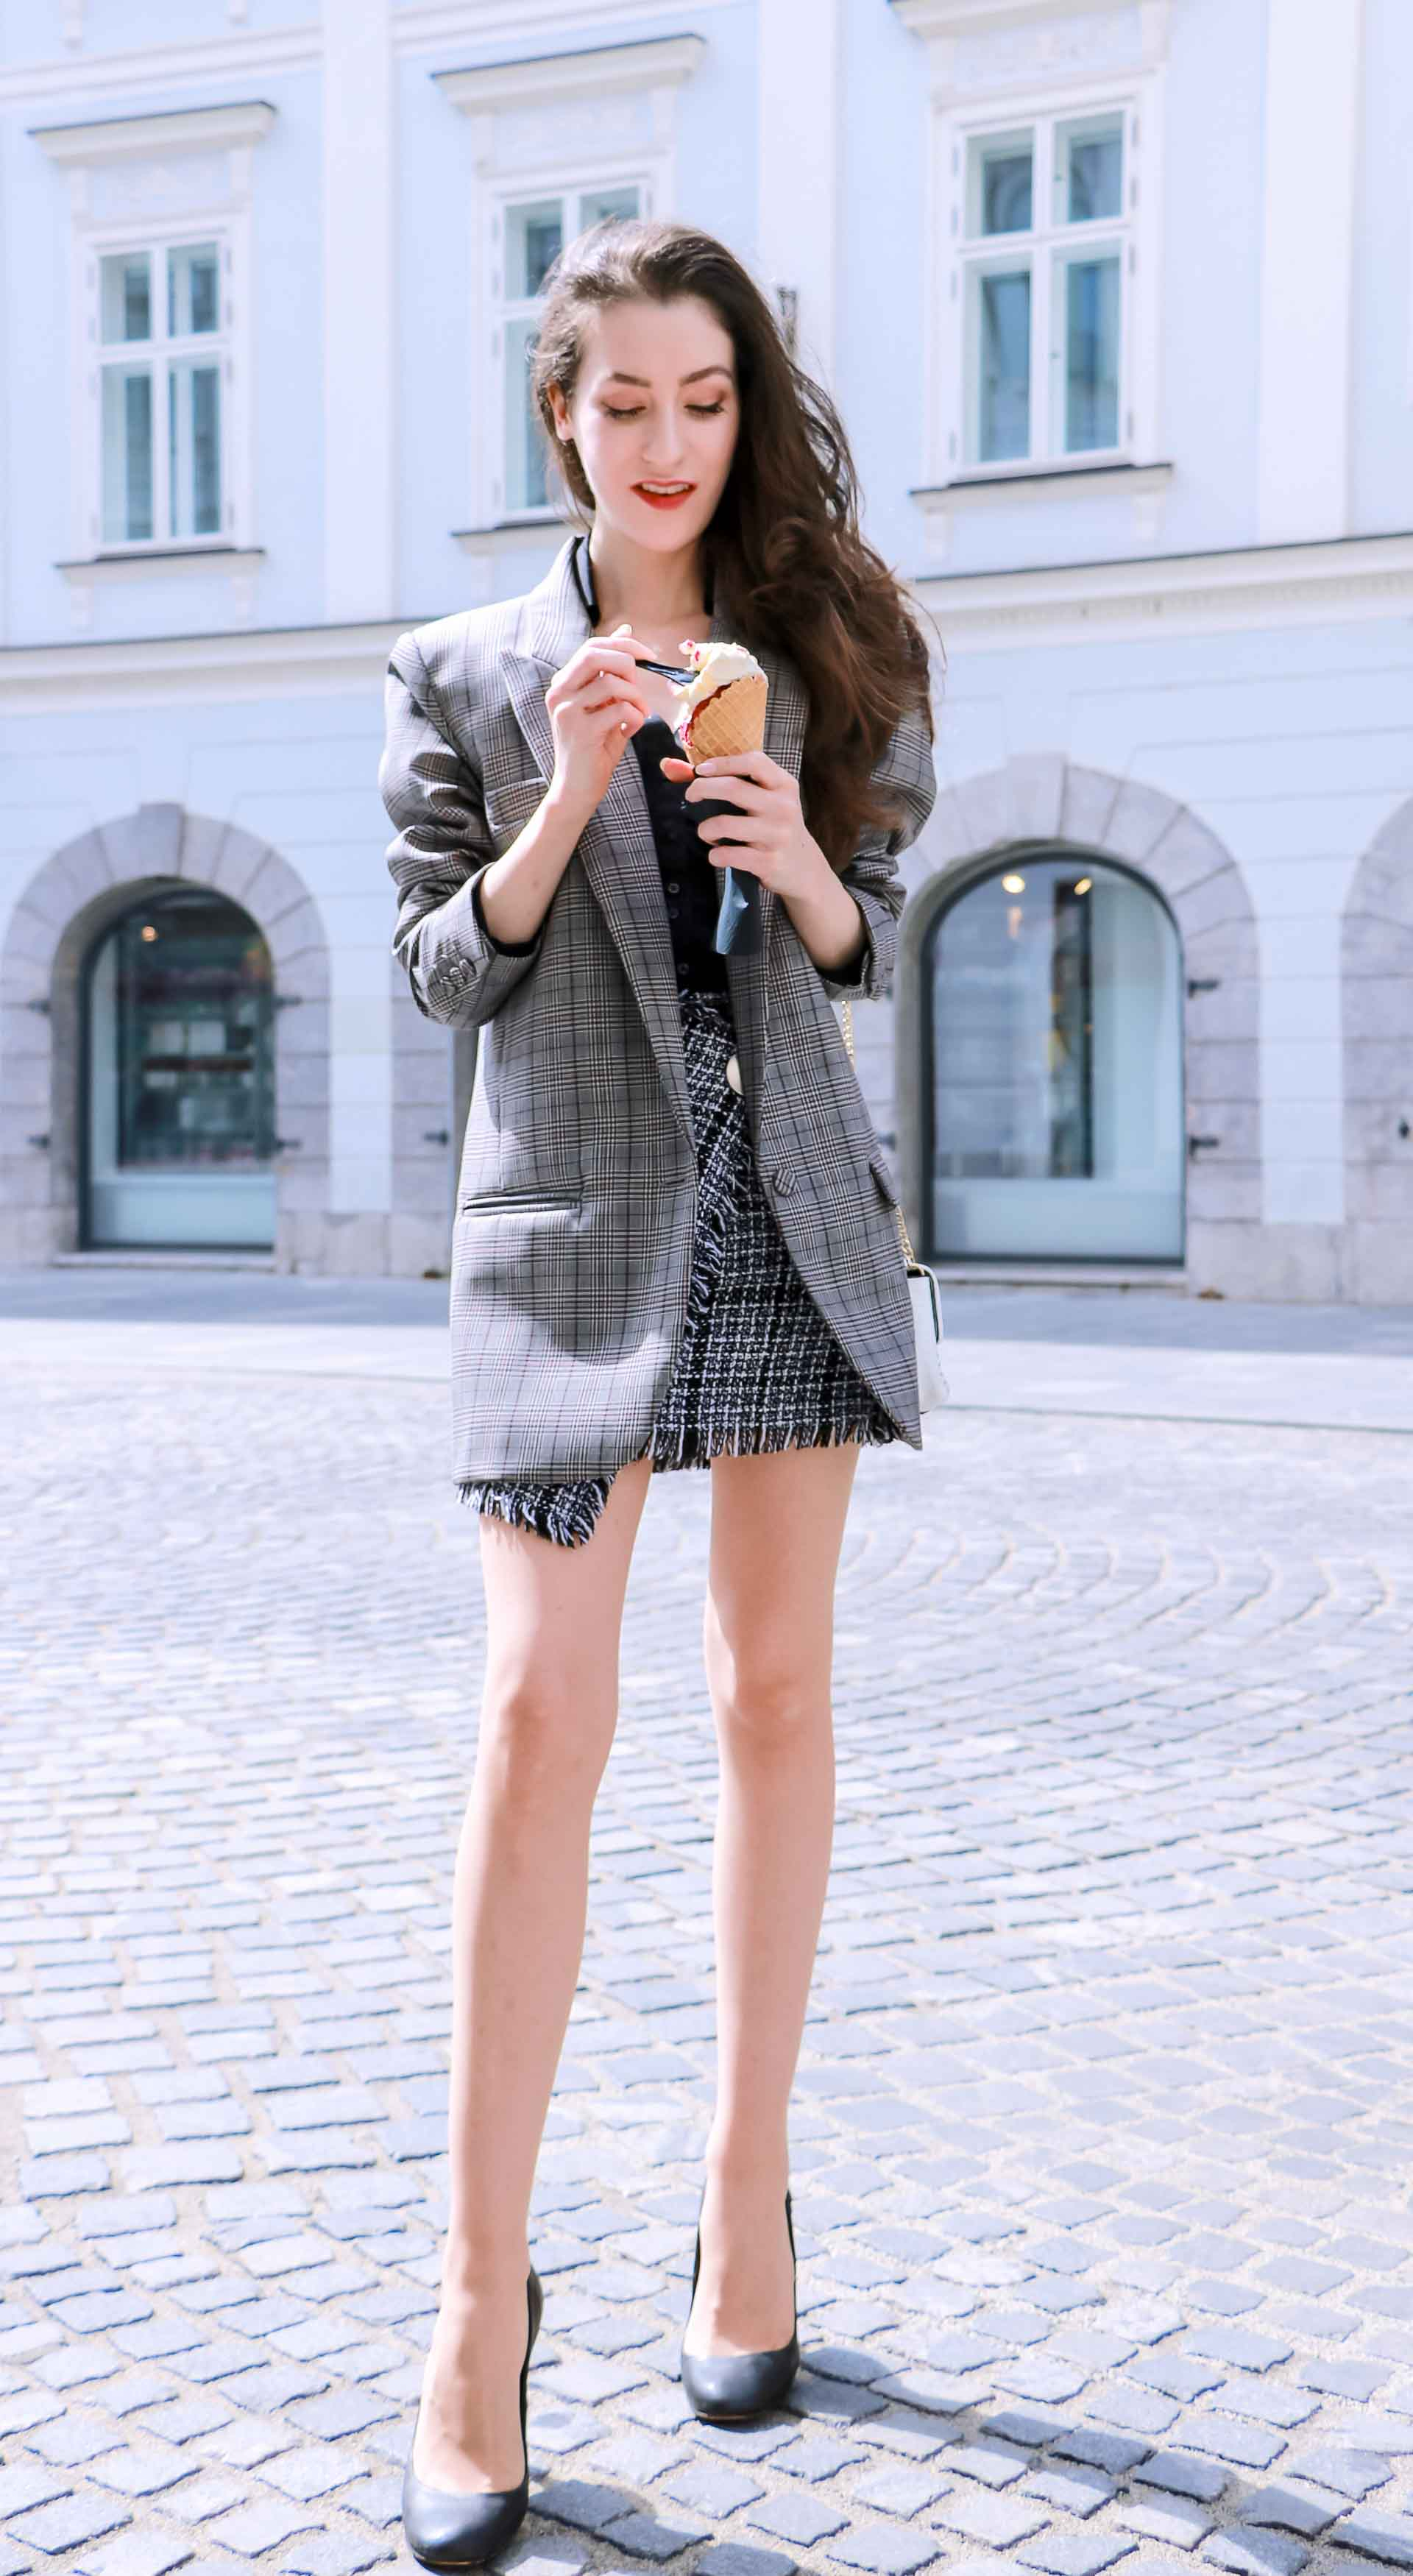 Fashion Blogger Veronika Lipar of Brunette from Wall Street dressed in Erika Cavallini oversized boyfriend checked blazer with short tweed black and white mini skirt from streets, black pumps and white chain strap shoulder bag while eating ice cream